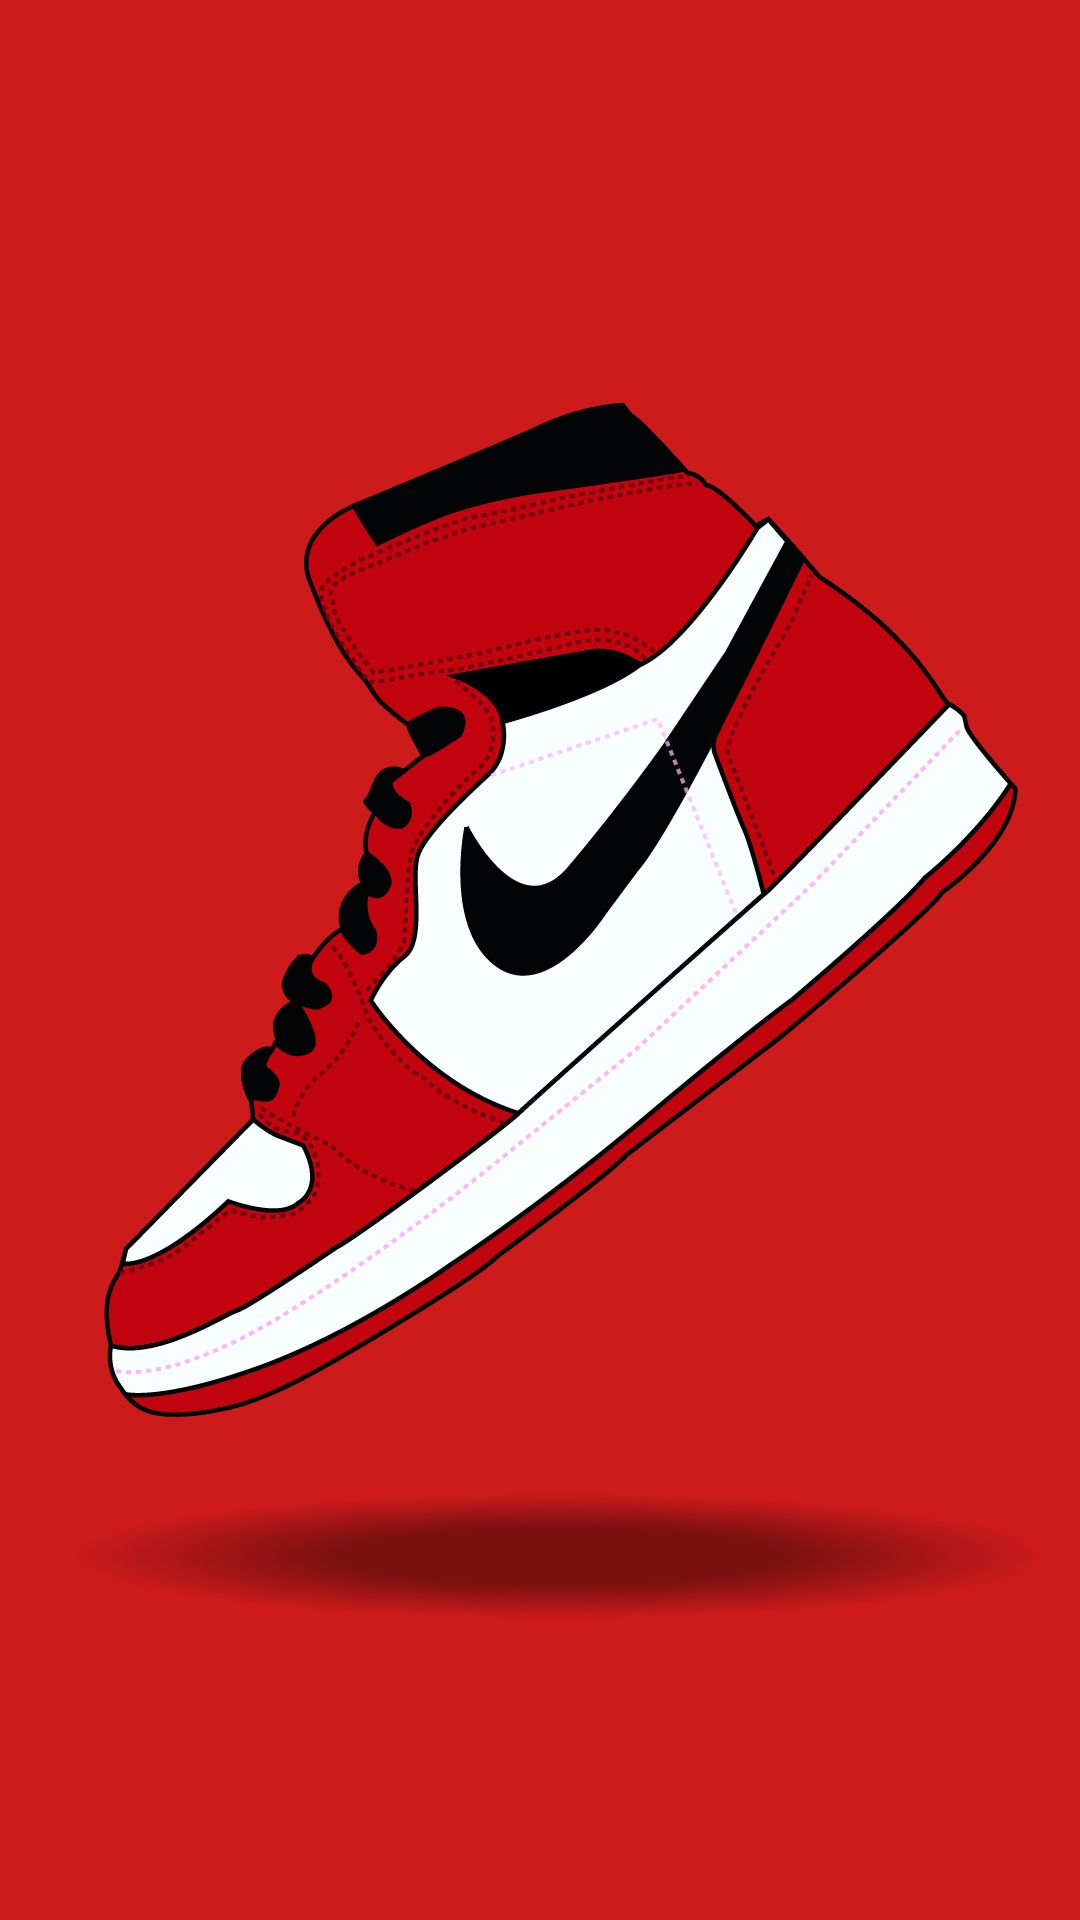 Nike Air Jordan 1 Android Iphone X 1080p Wallpaper Nike